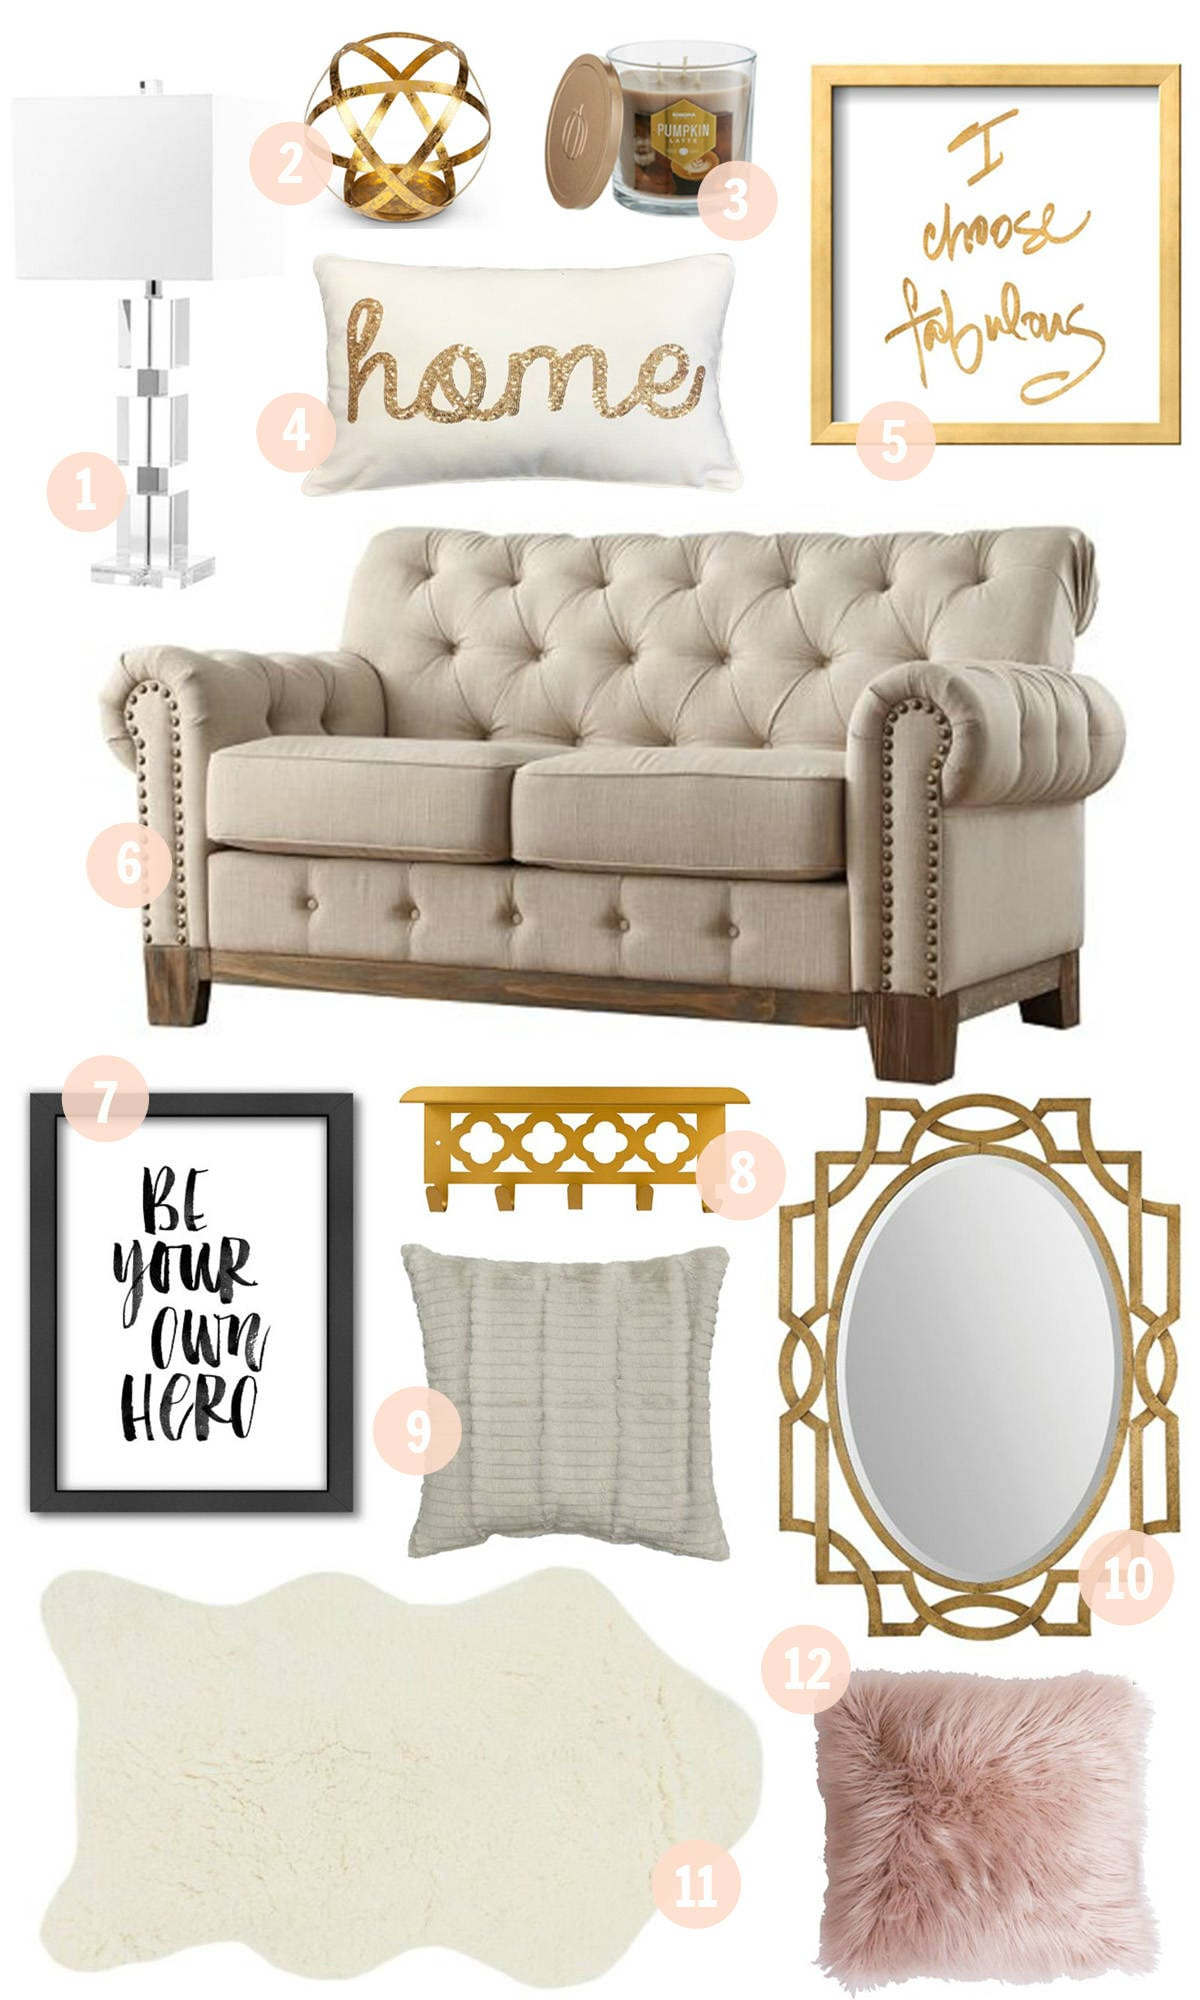 Blogger Mash Elle shares gold, white, cream and pink blush affordable home decor from Kohls